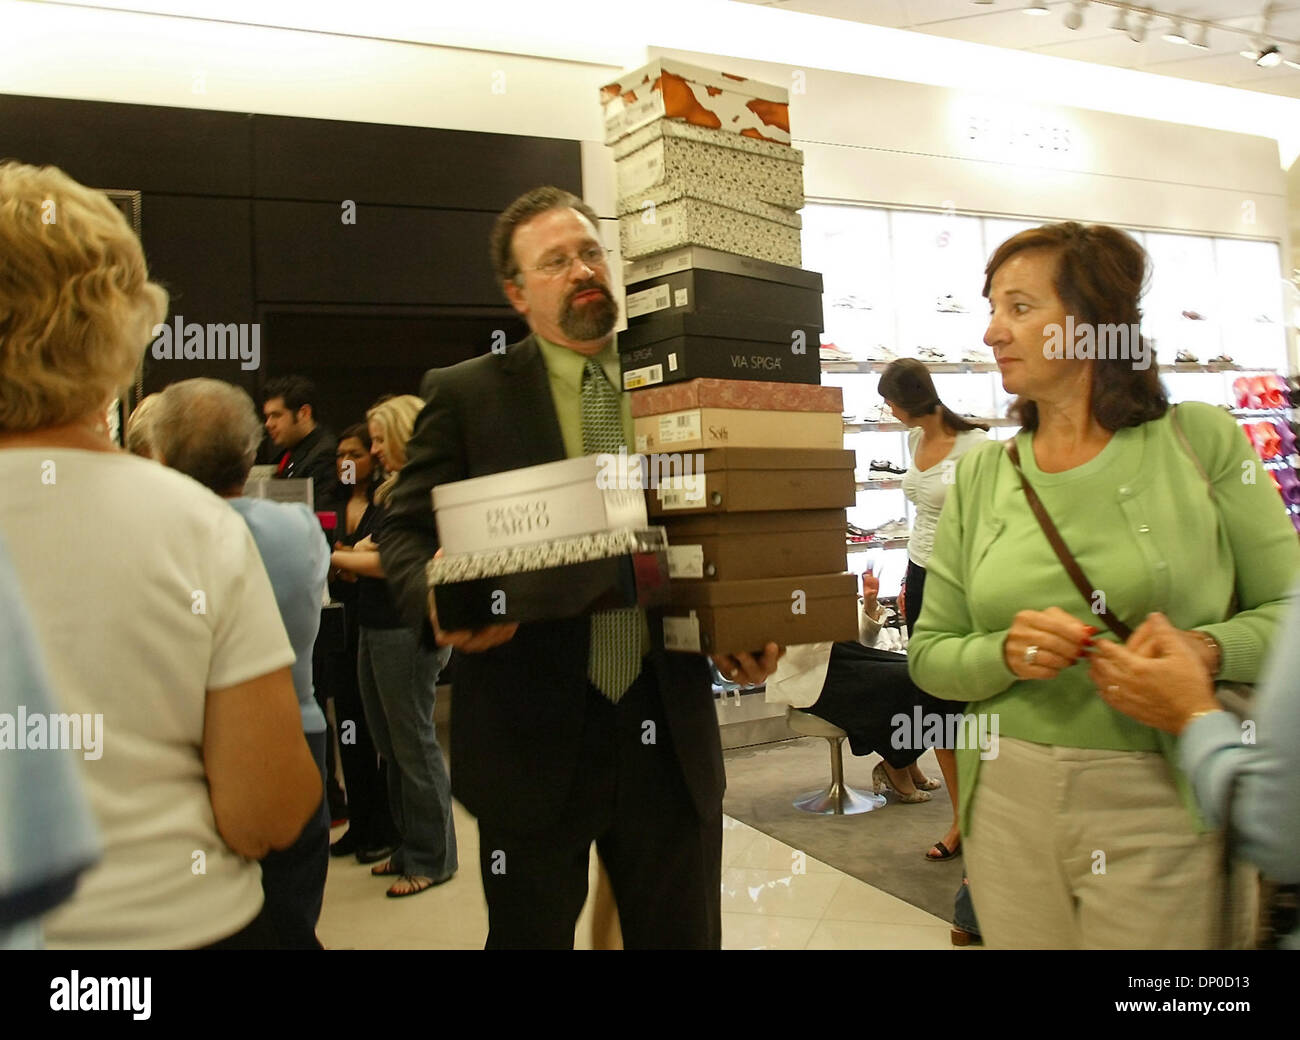 Shoe Salesman Stock Photos & Shoe Salesman Stock Images - Page 3 - Alamy